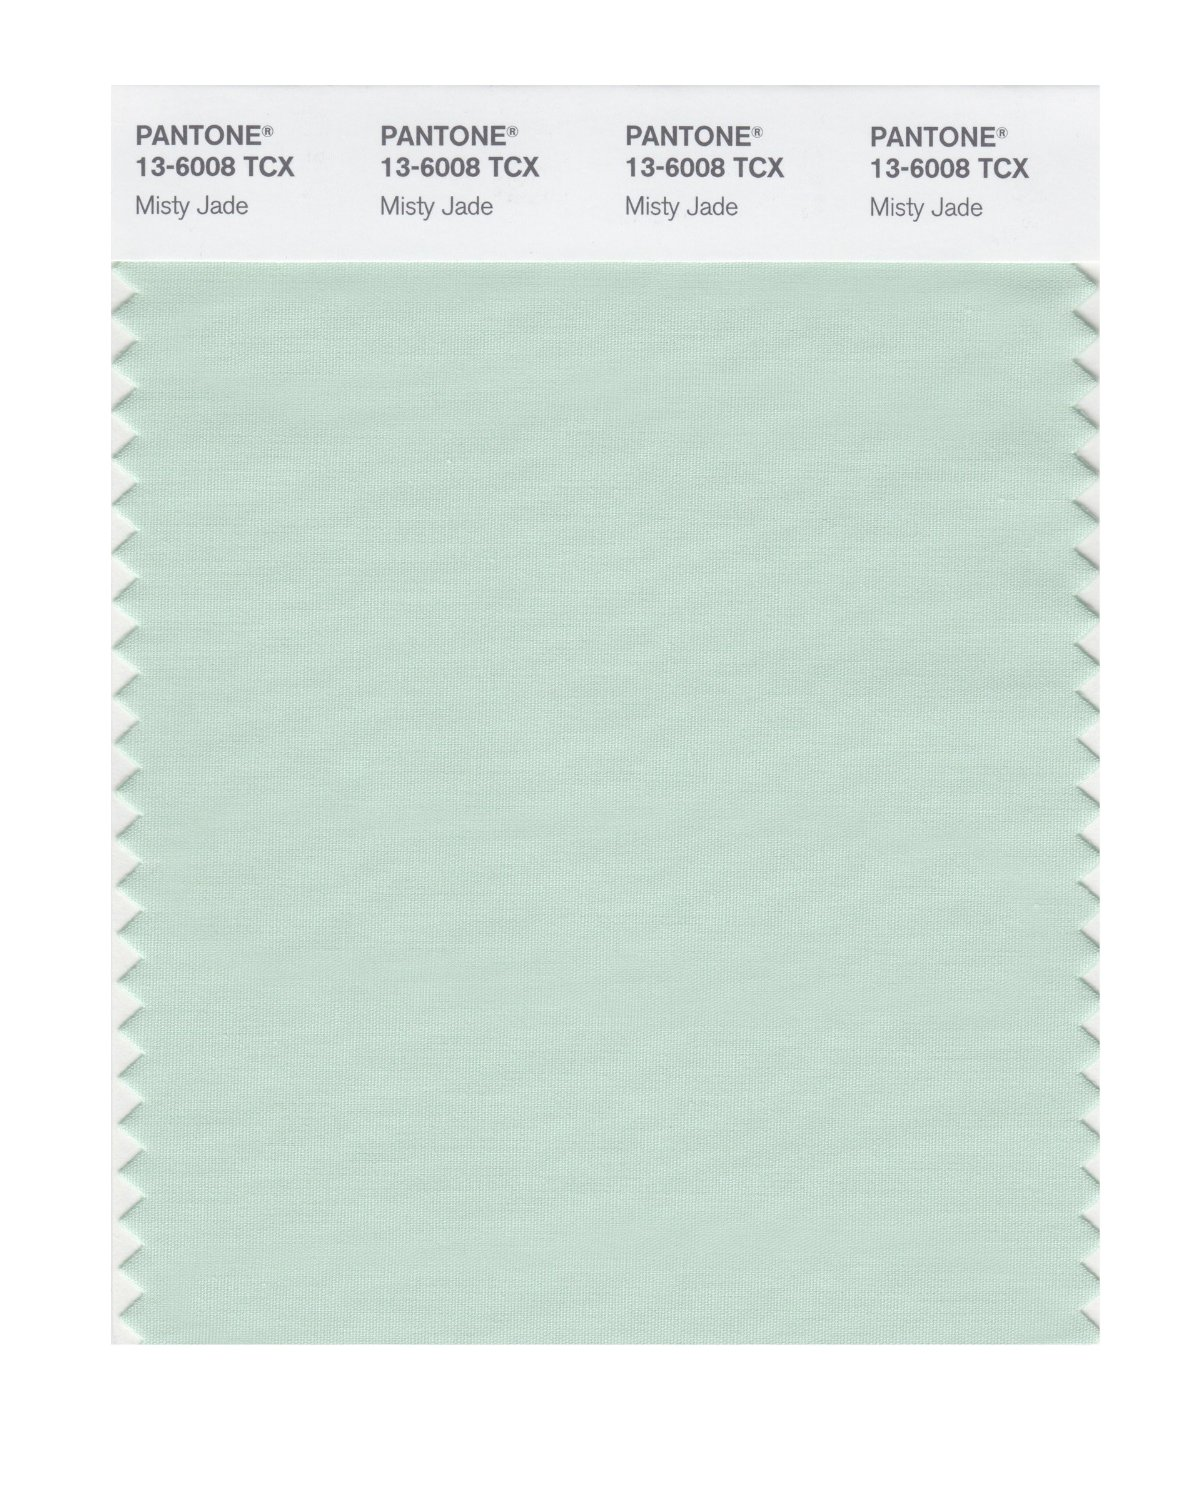 Pantone Smart Swatch 13-6008 Misty Jade